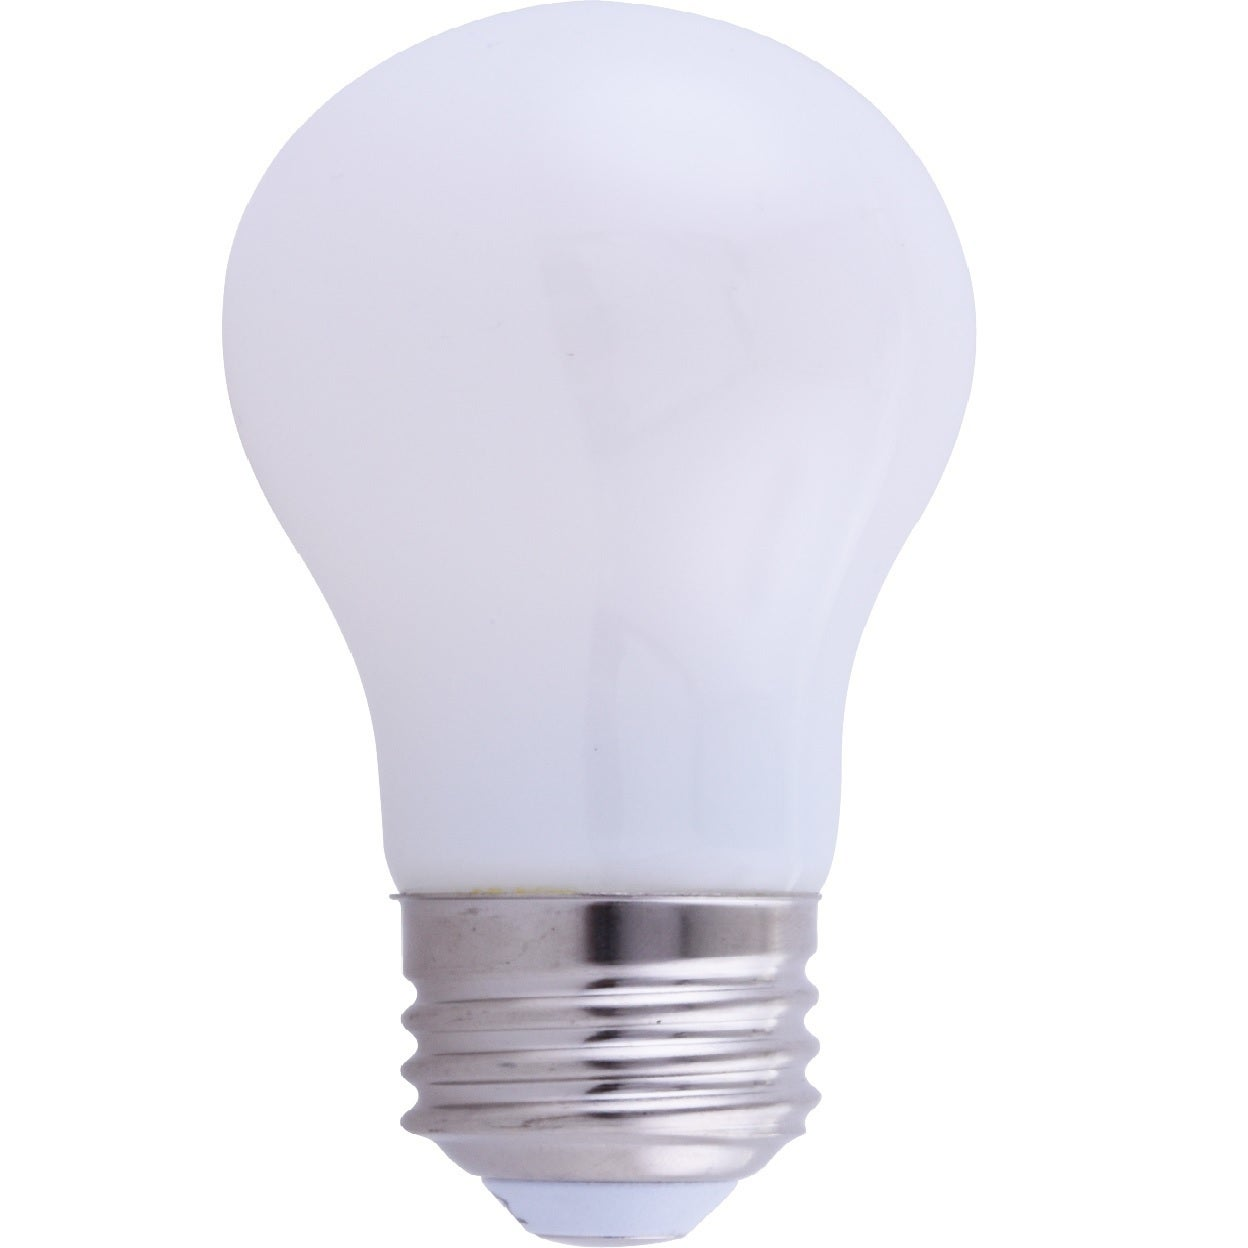 FEIT Electric Smart Wi-Fi LED Color Changing Dimmable 60W Light Bulbs N1